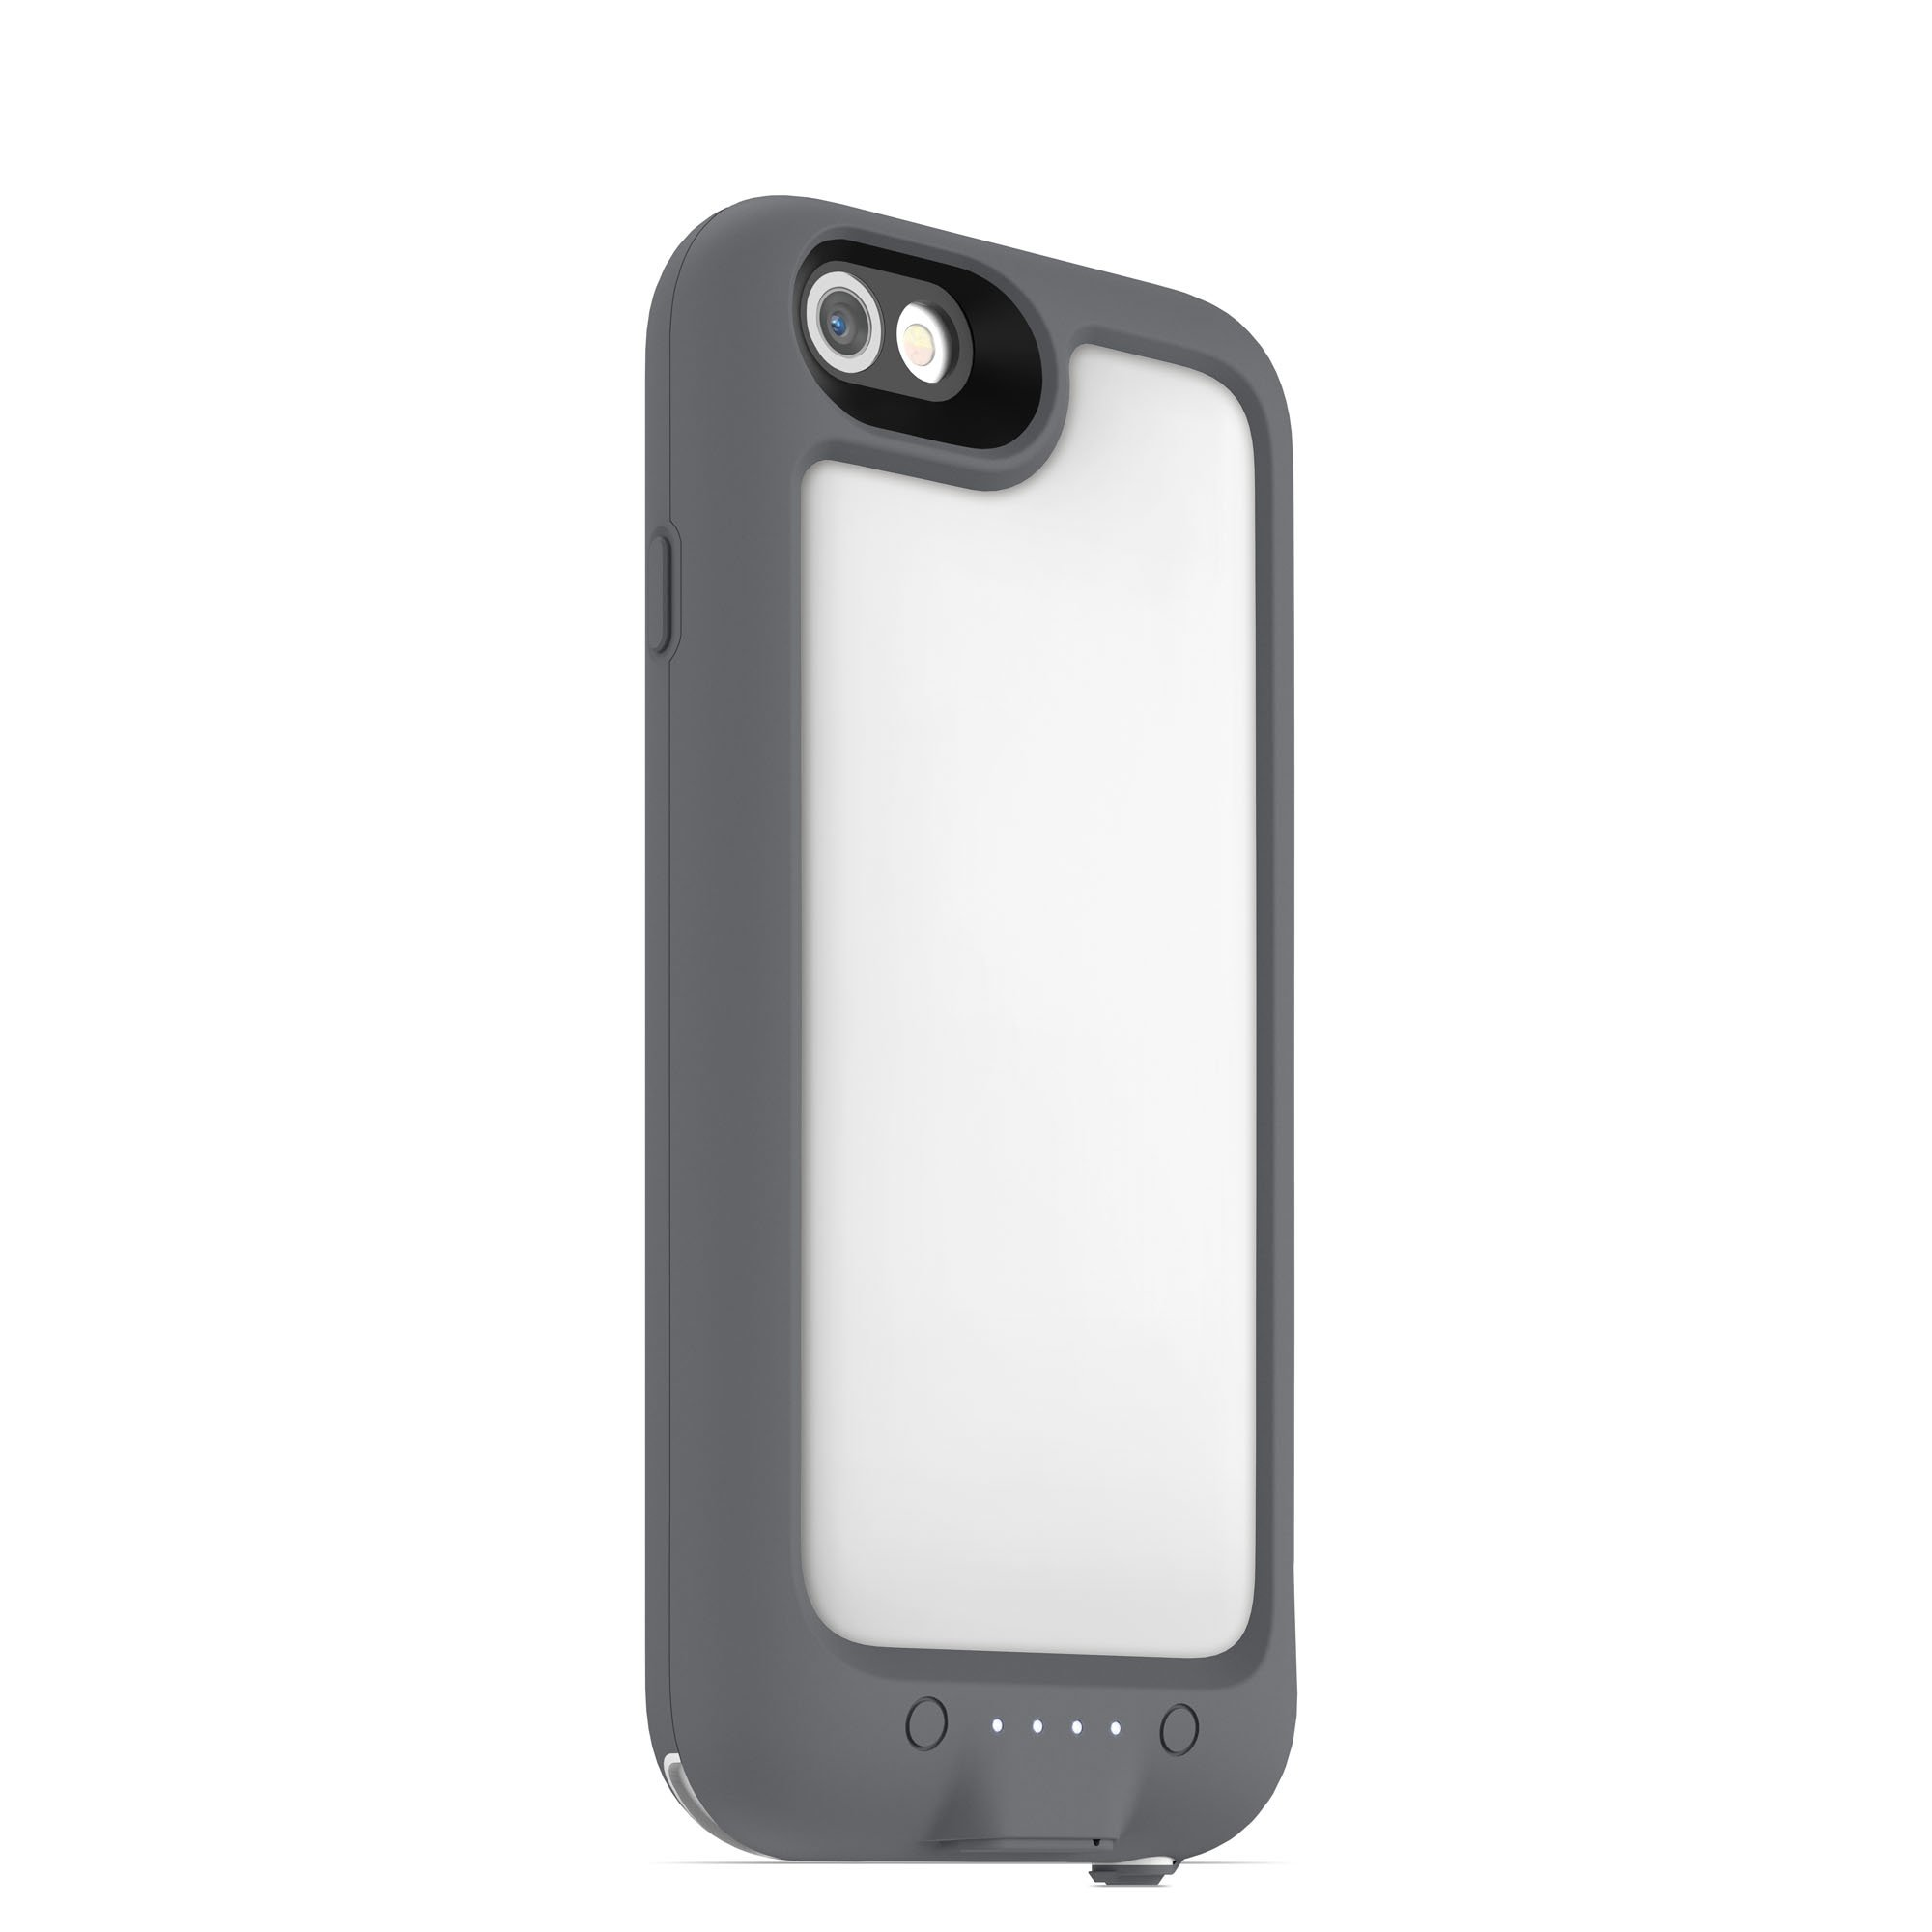 mophie juice pack H2PRO - Waterproof Mobile Protective Battery Pack Case for iPhone 6/6s - White by mophie (Image #3)